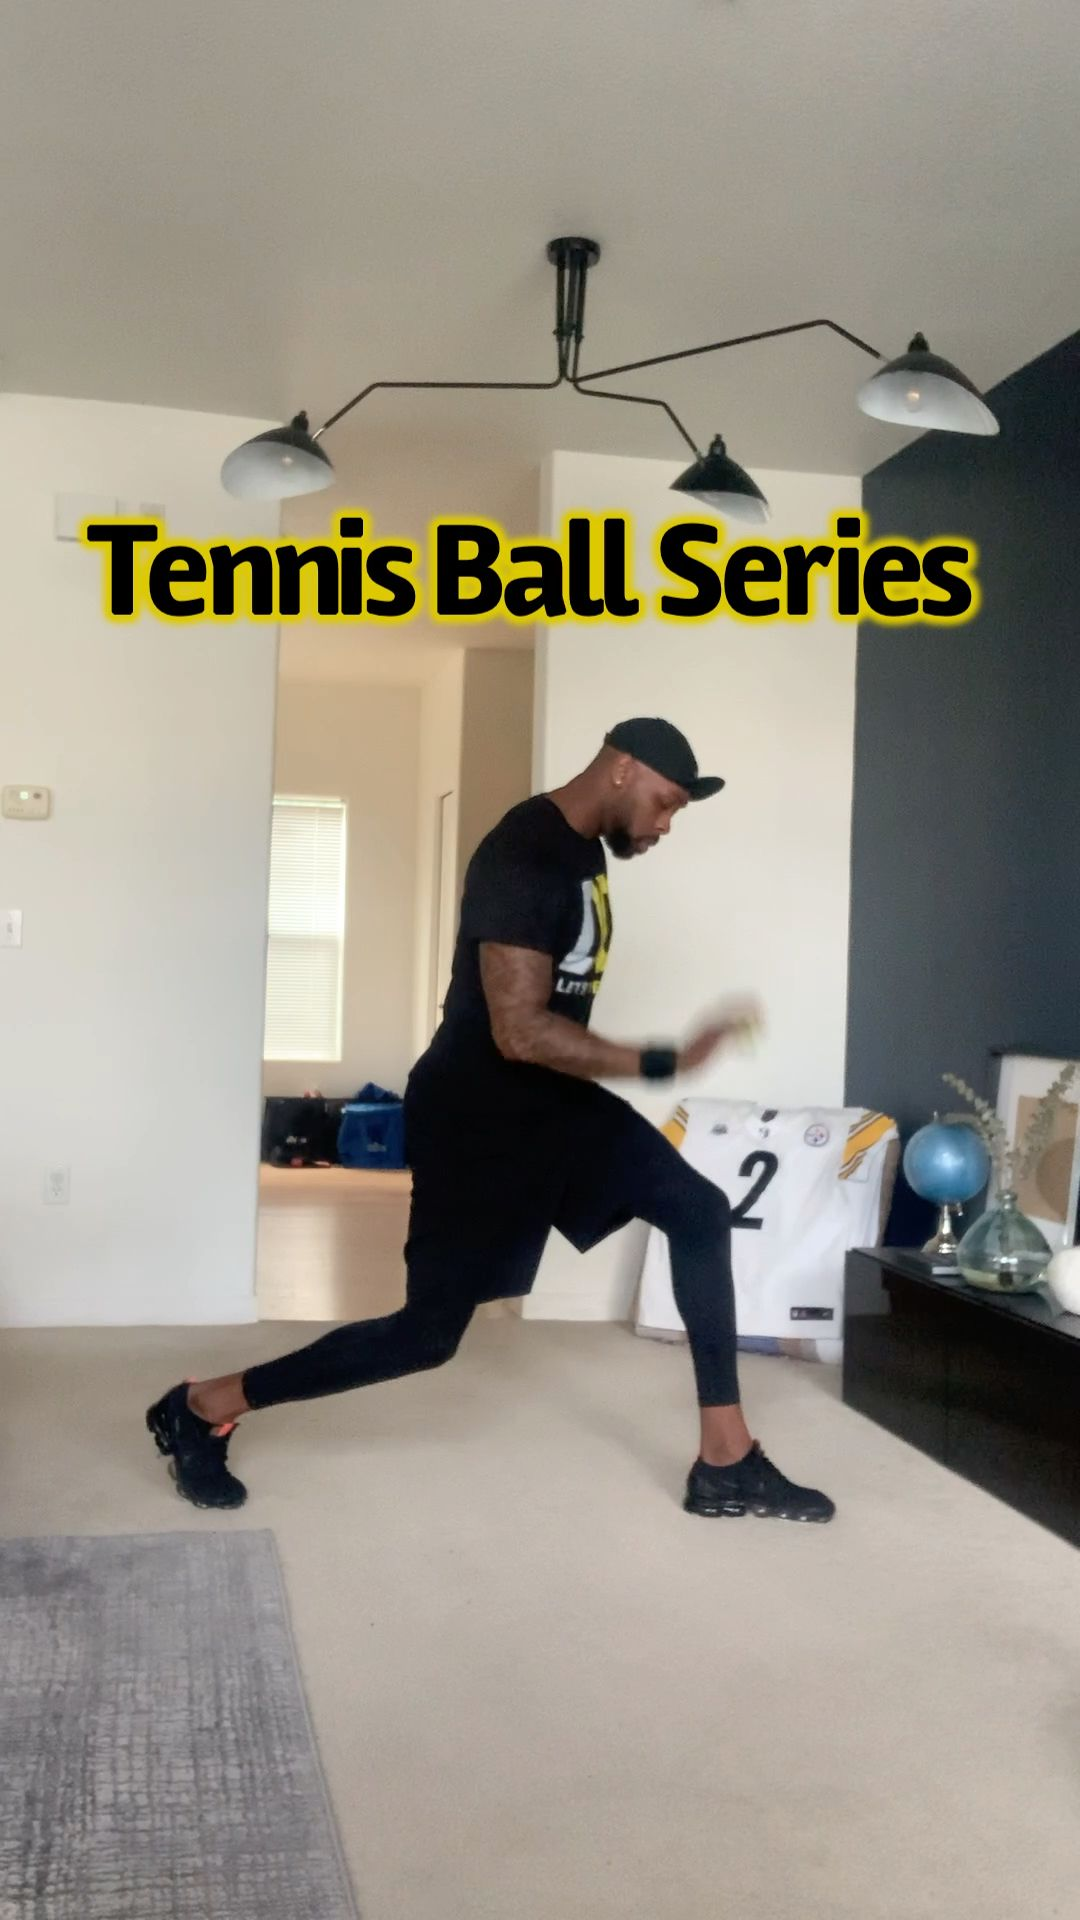 Tennis Ball 🎾 Series